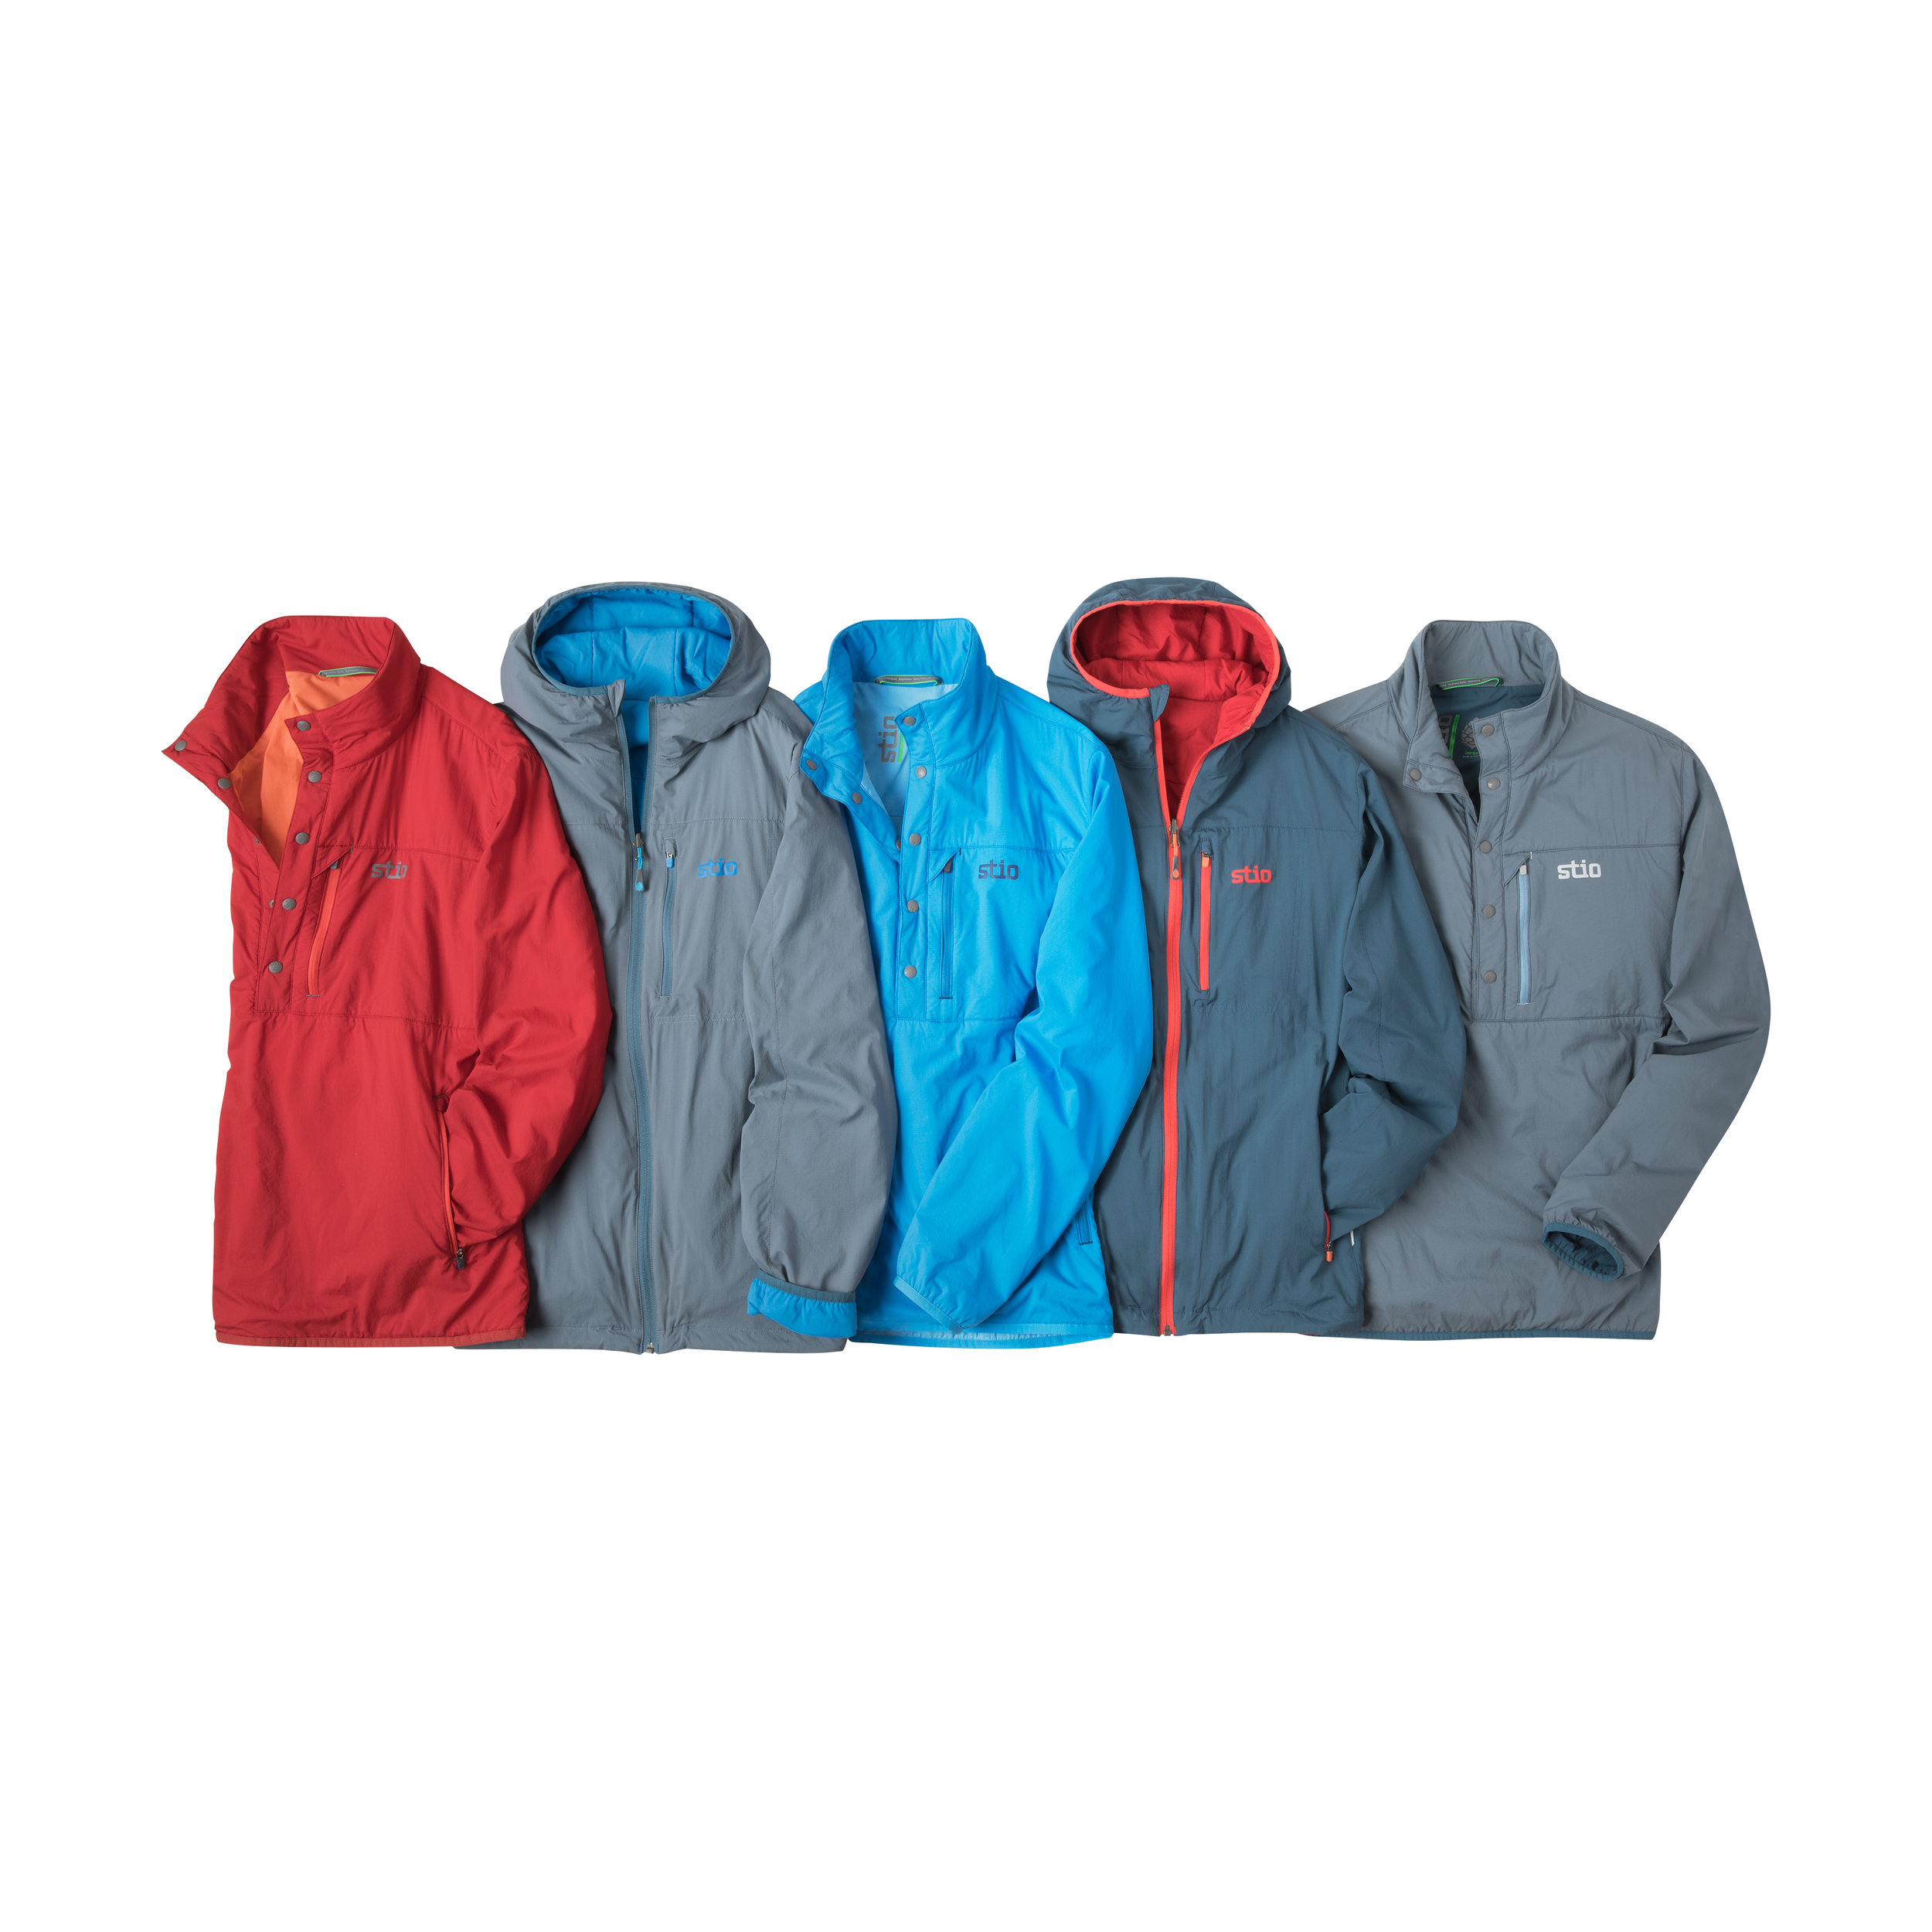 M-Alpha-Alpine-Jackets-Pullovers-Group.jpg